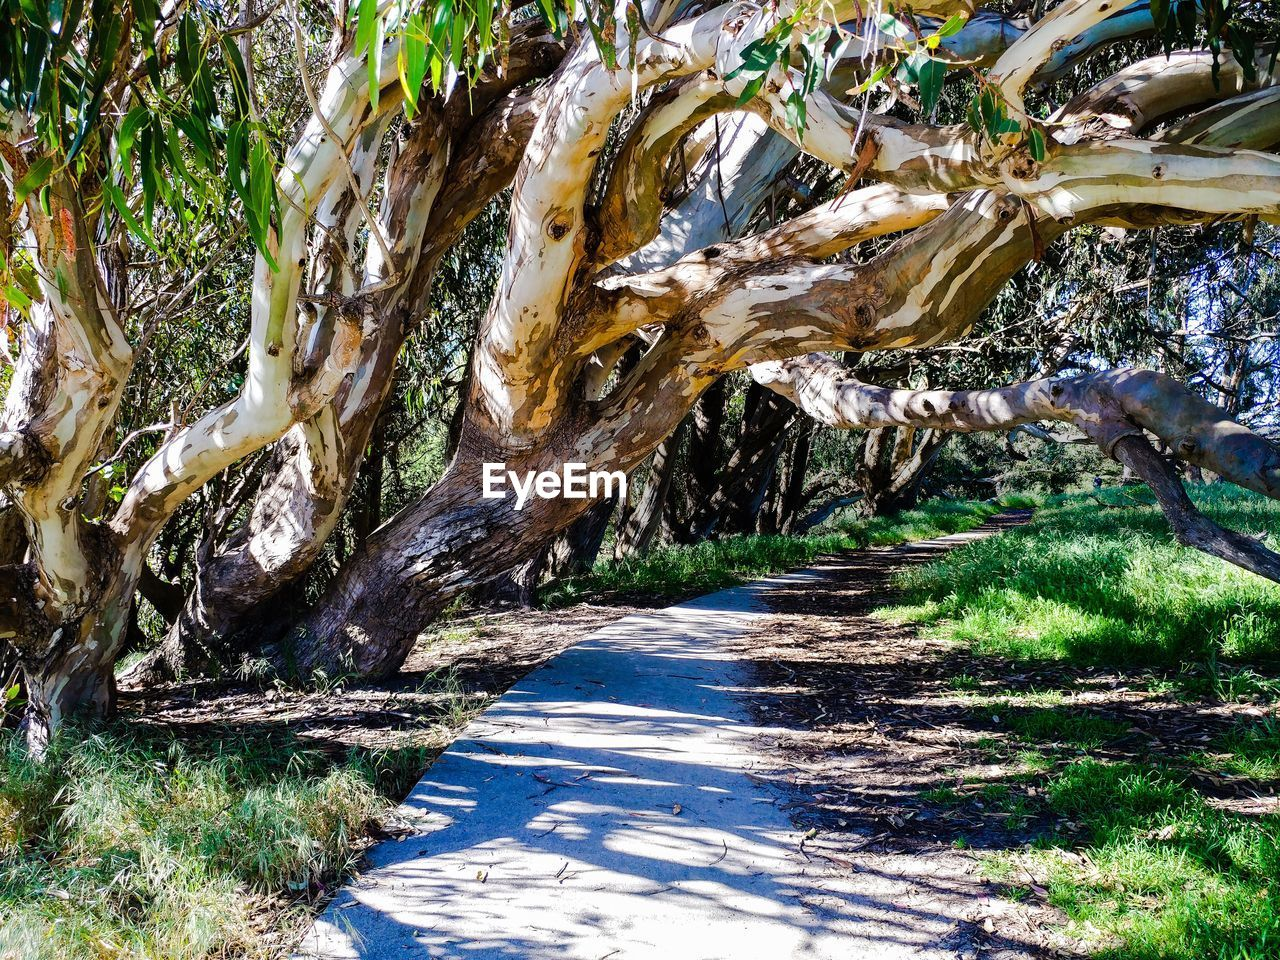 tree, tree trunk, nature, day, outdoors, sunlight, no people, growth, branch, shadow, forest, scenics, beauty in nature